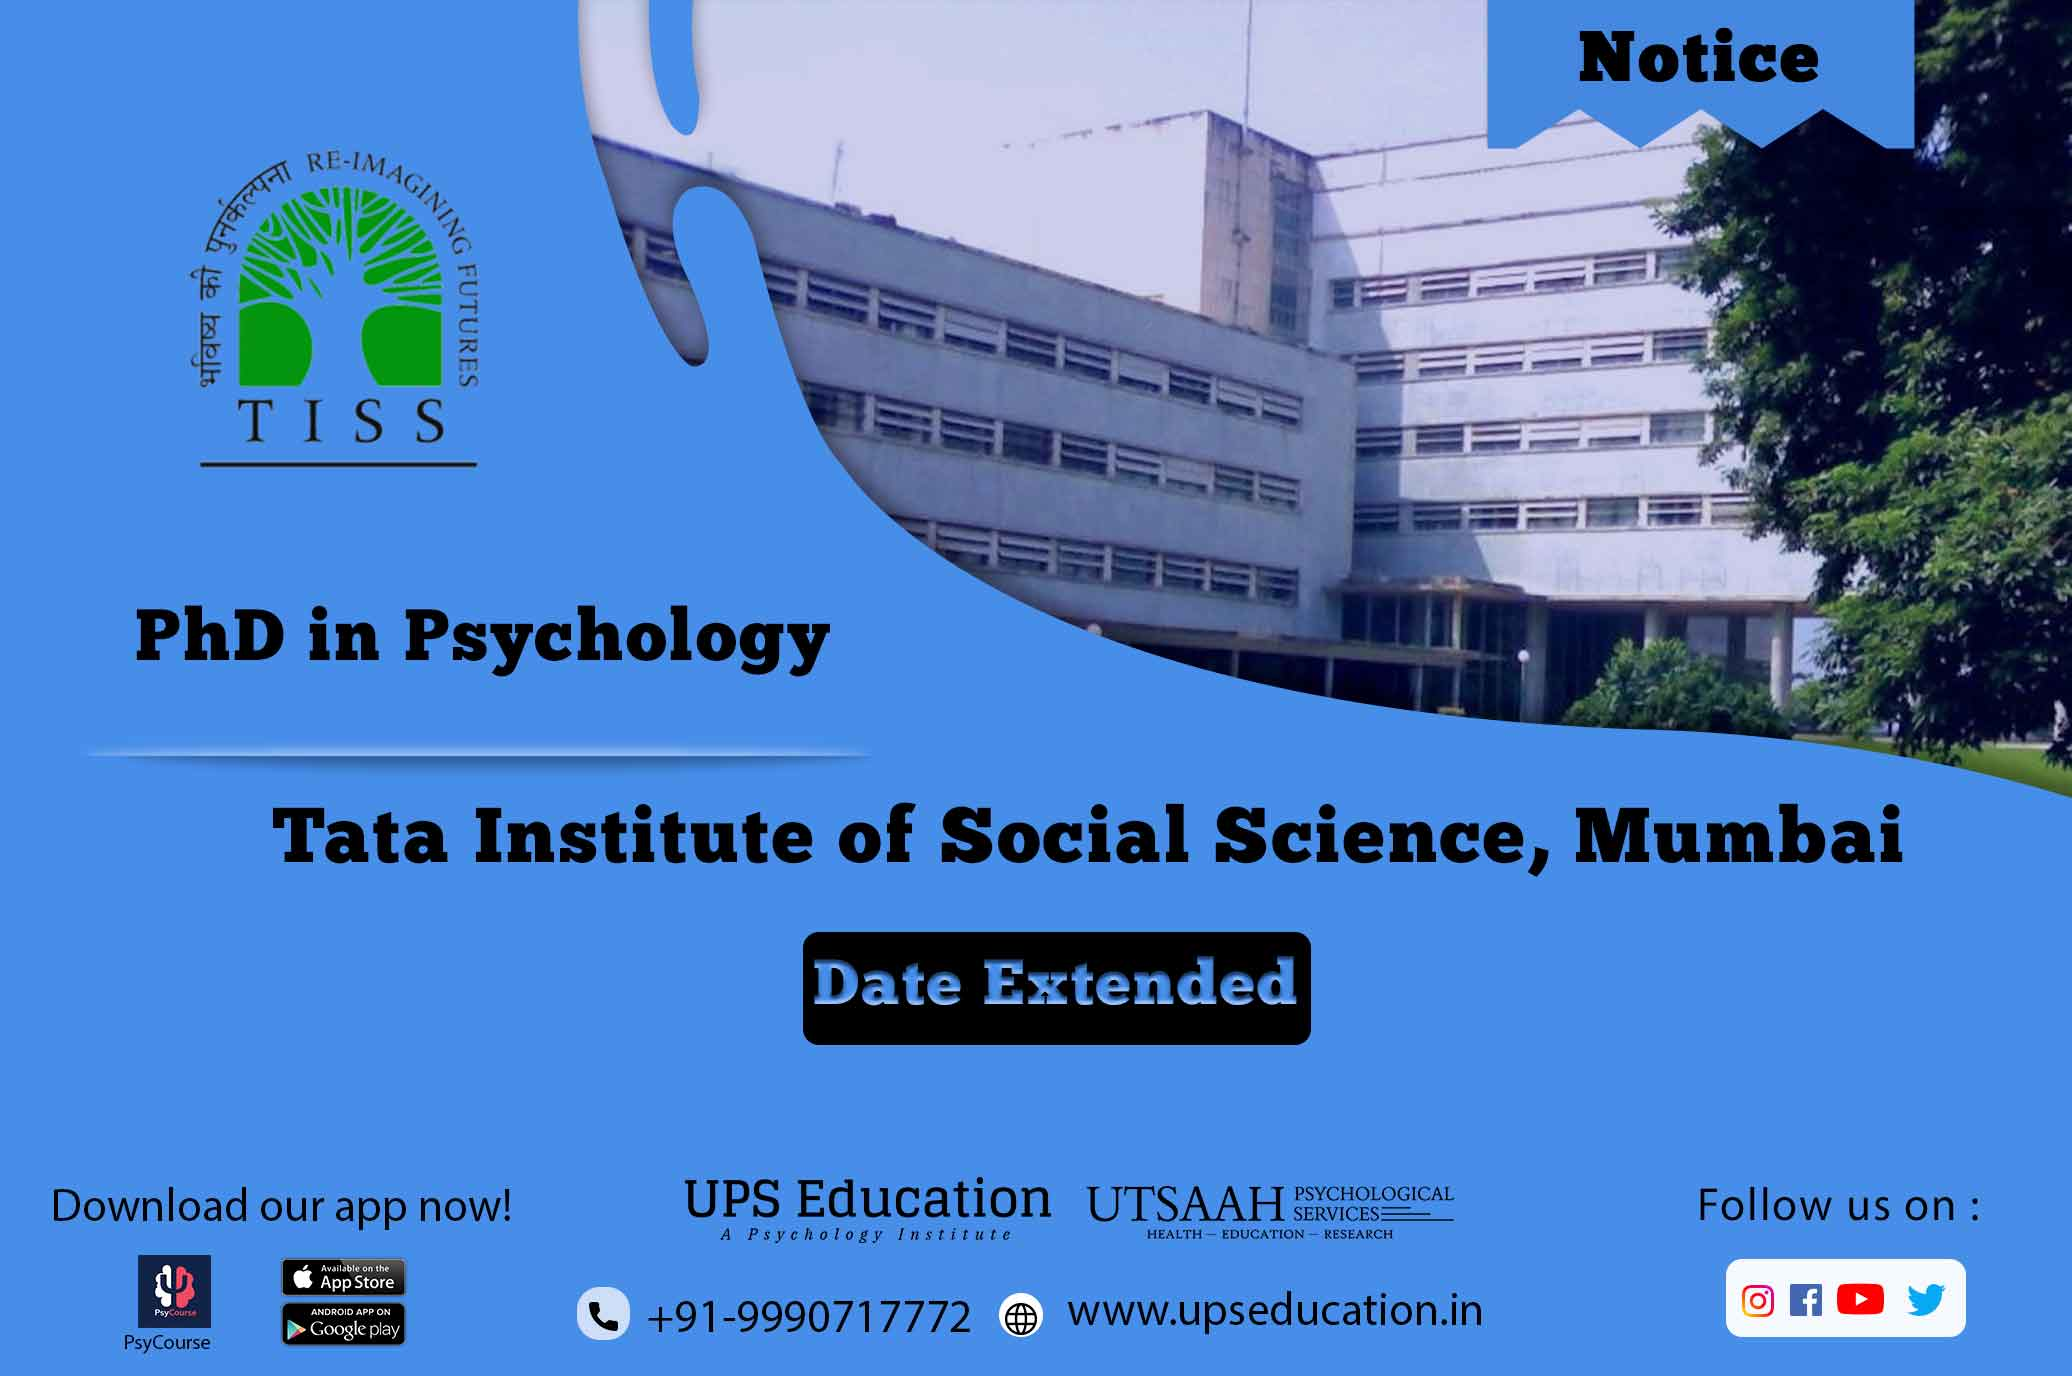 Tiss Phd in Psychology admission 2021.